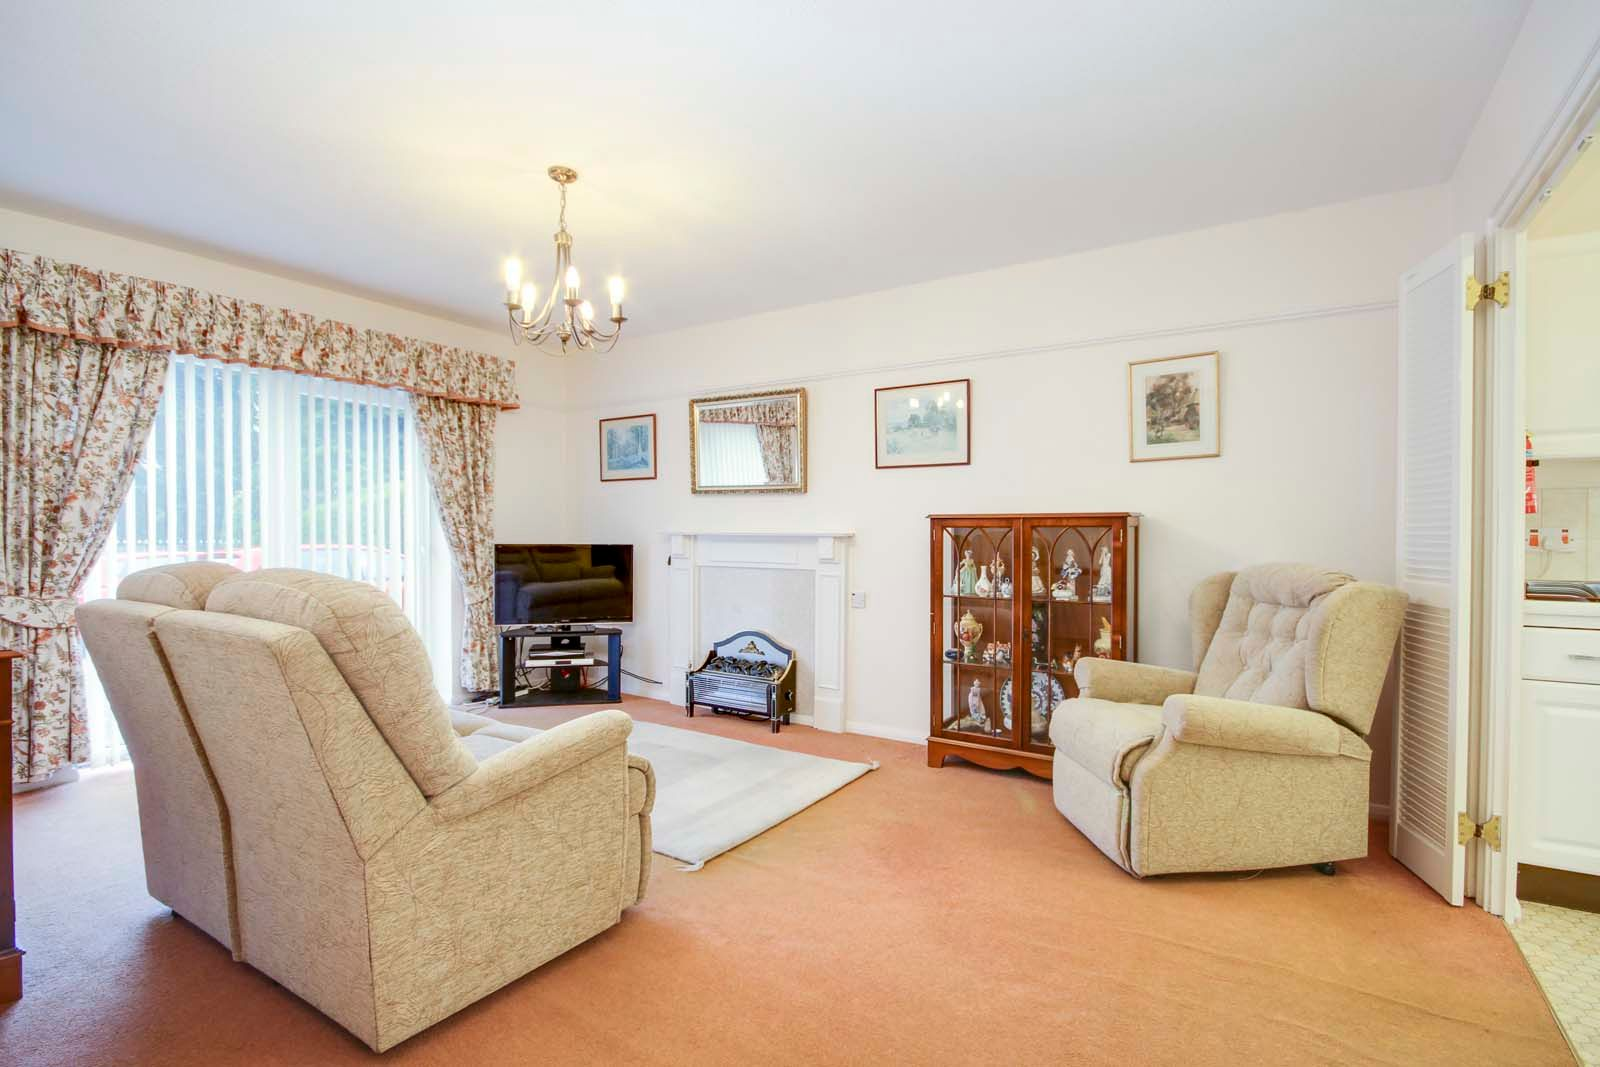 2 bed Apartment for sale in East Preston - Lounge (Property Image 1)